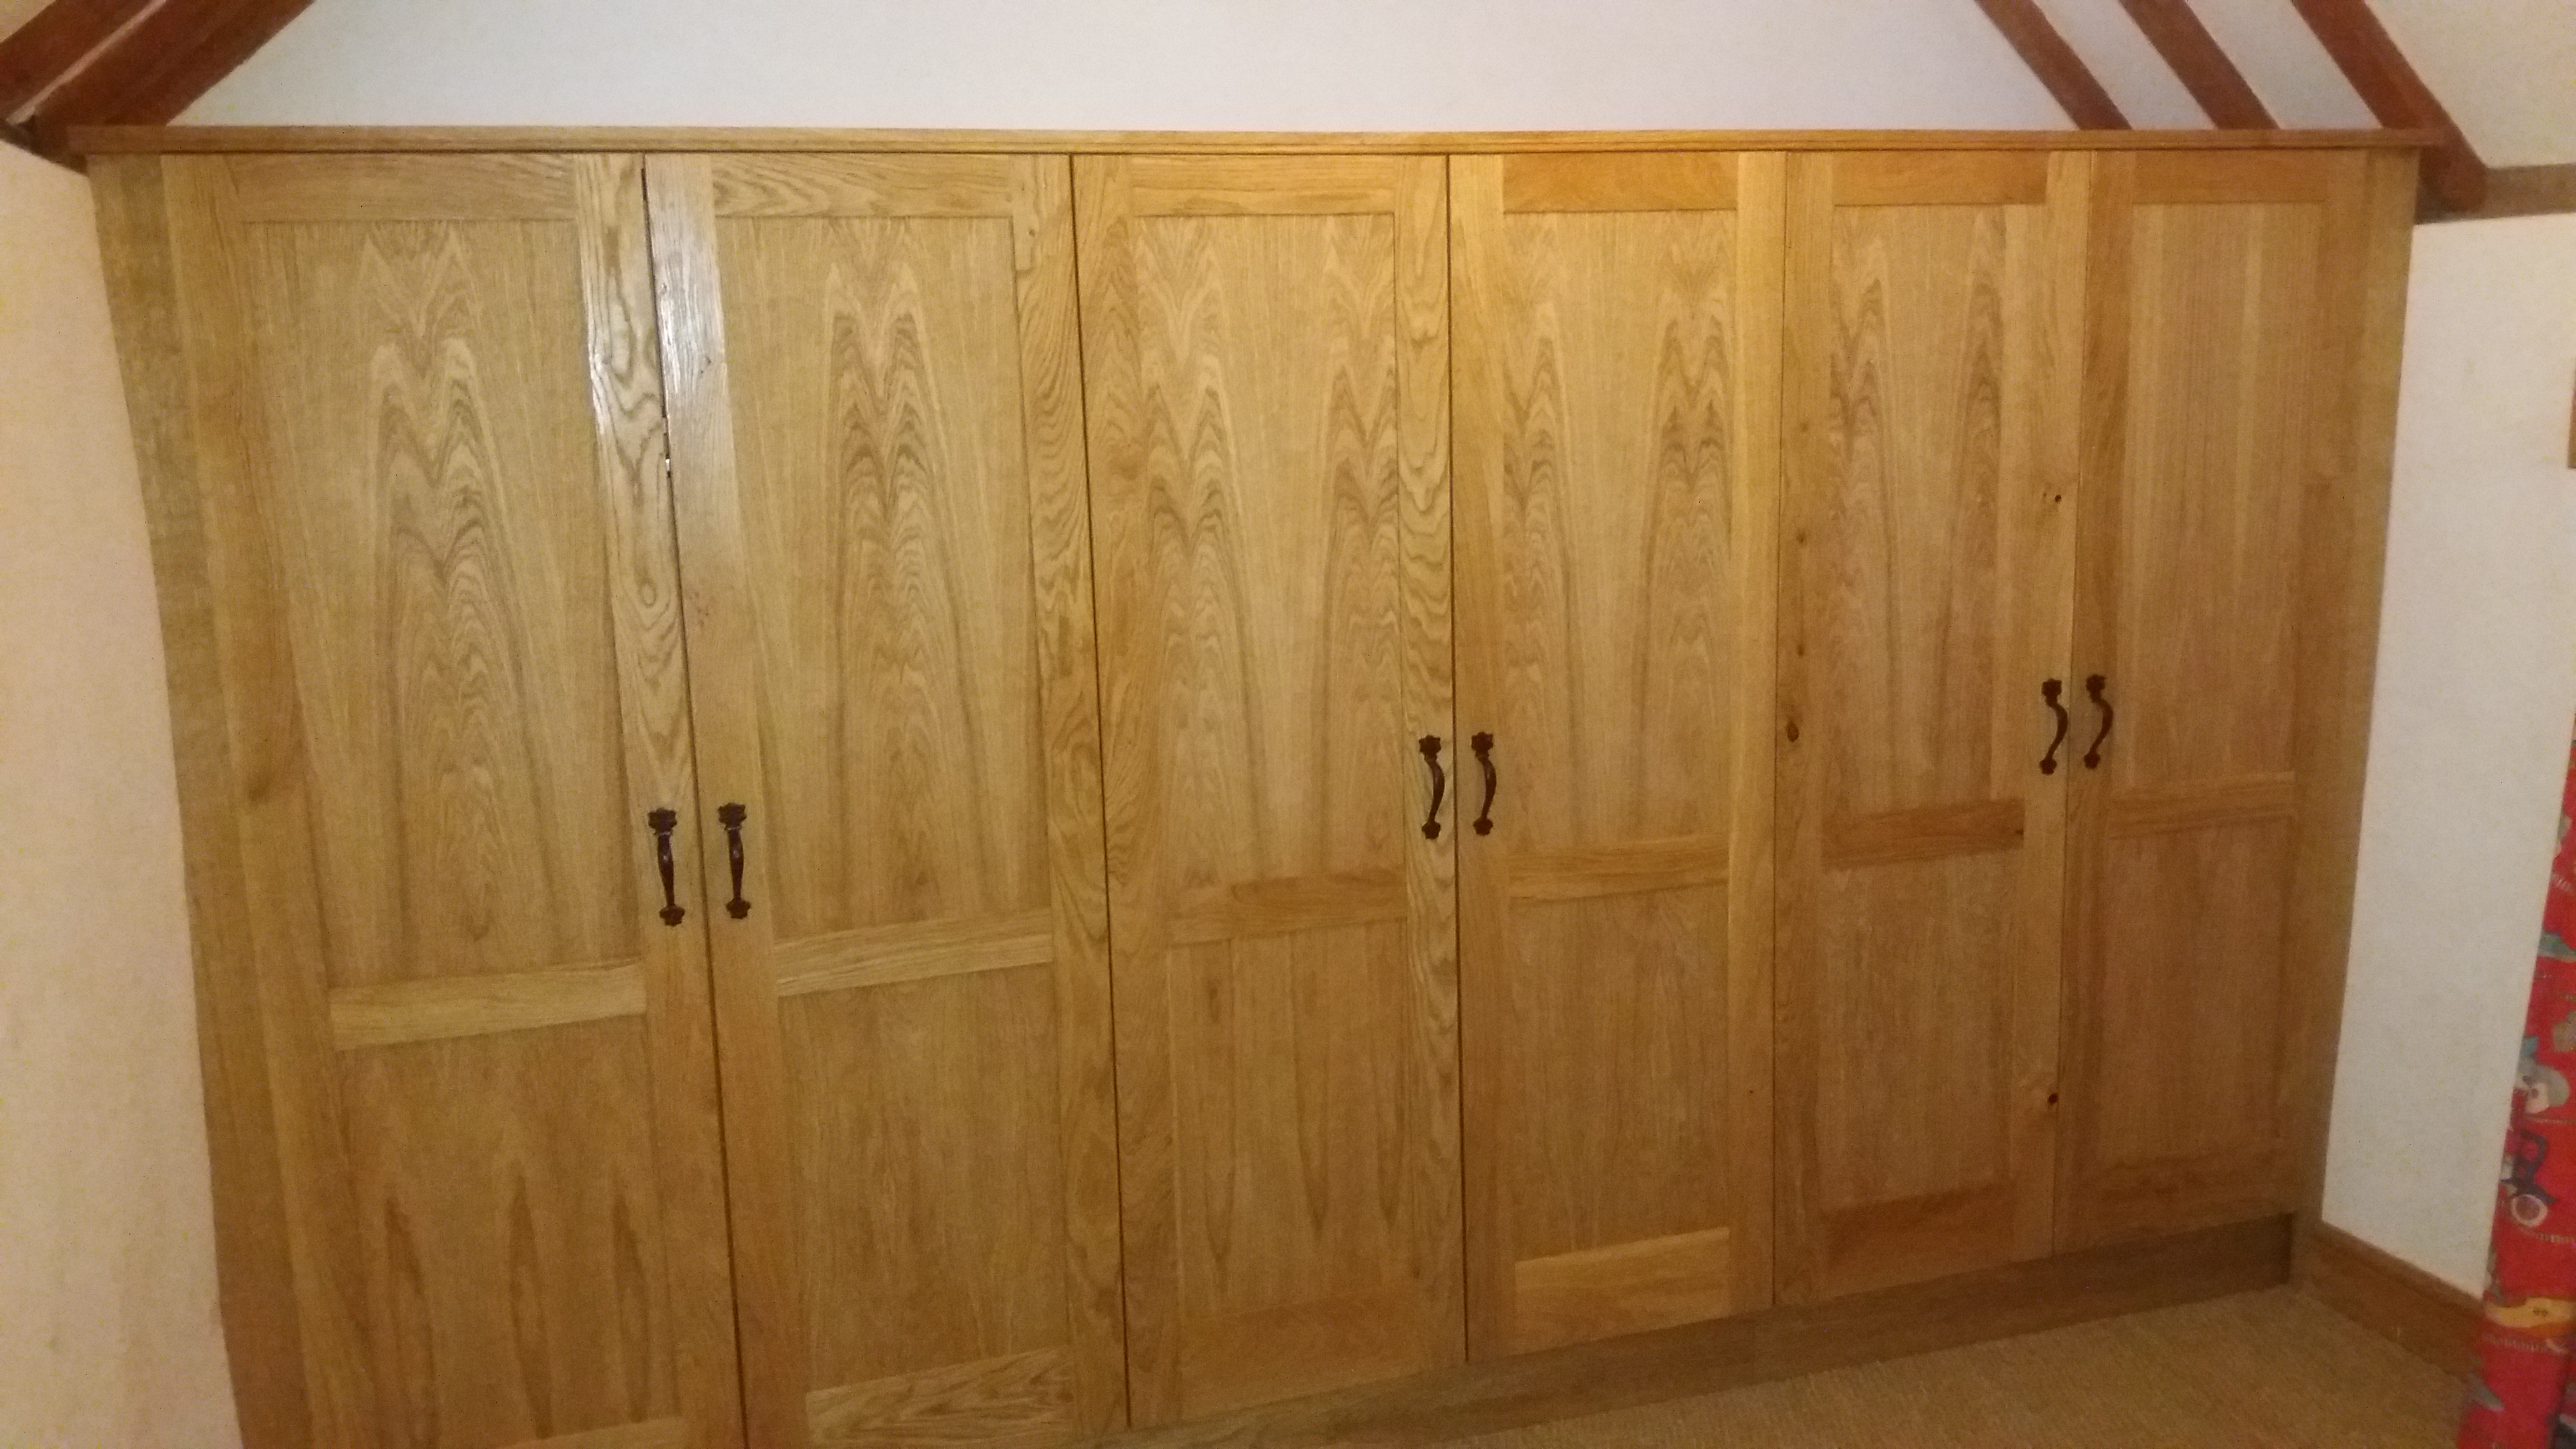 Solid oak and veneer wardrobes